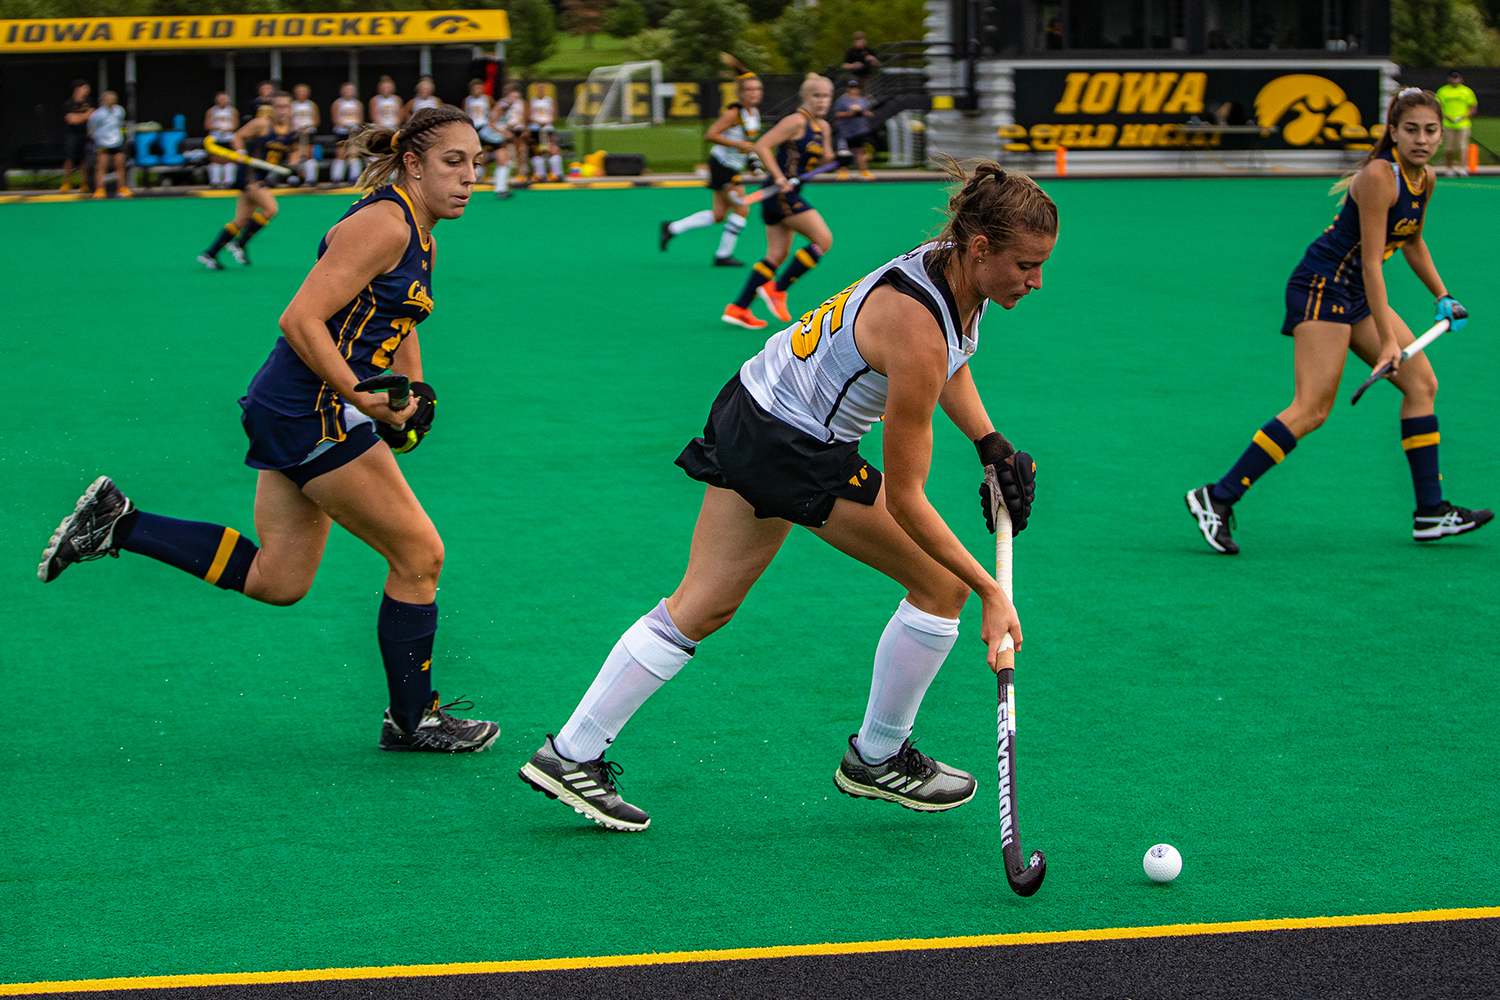 Iowa defender Esme Gibson makes a pass during a field hockey match between Iowa and California on Friday, September 13, 2019. The Hawkeyes defeated the Bears, 4-2. (Shivansh Ahuja/The Daily Iowan)